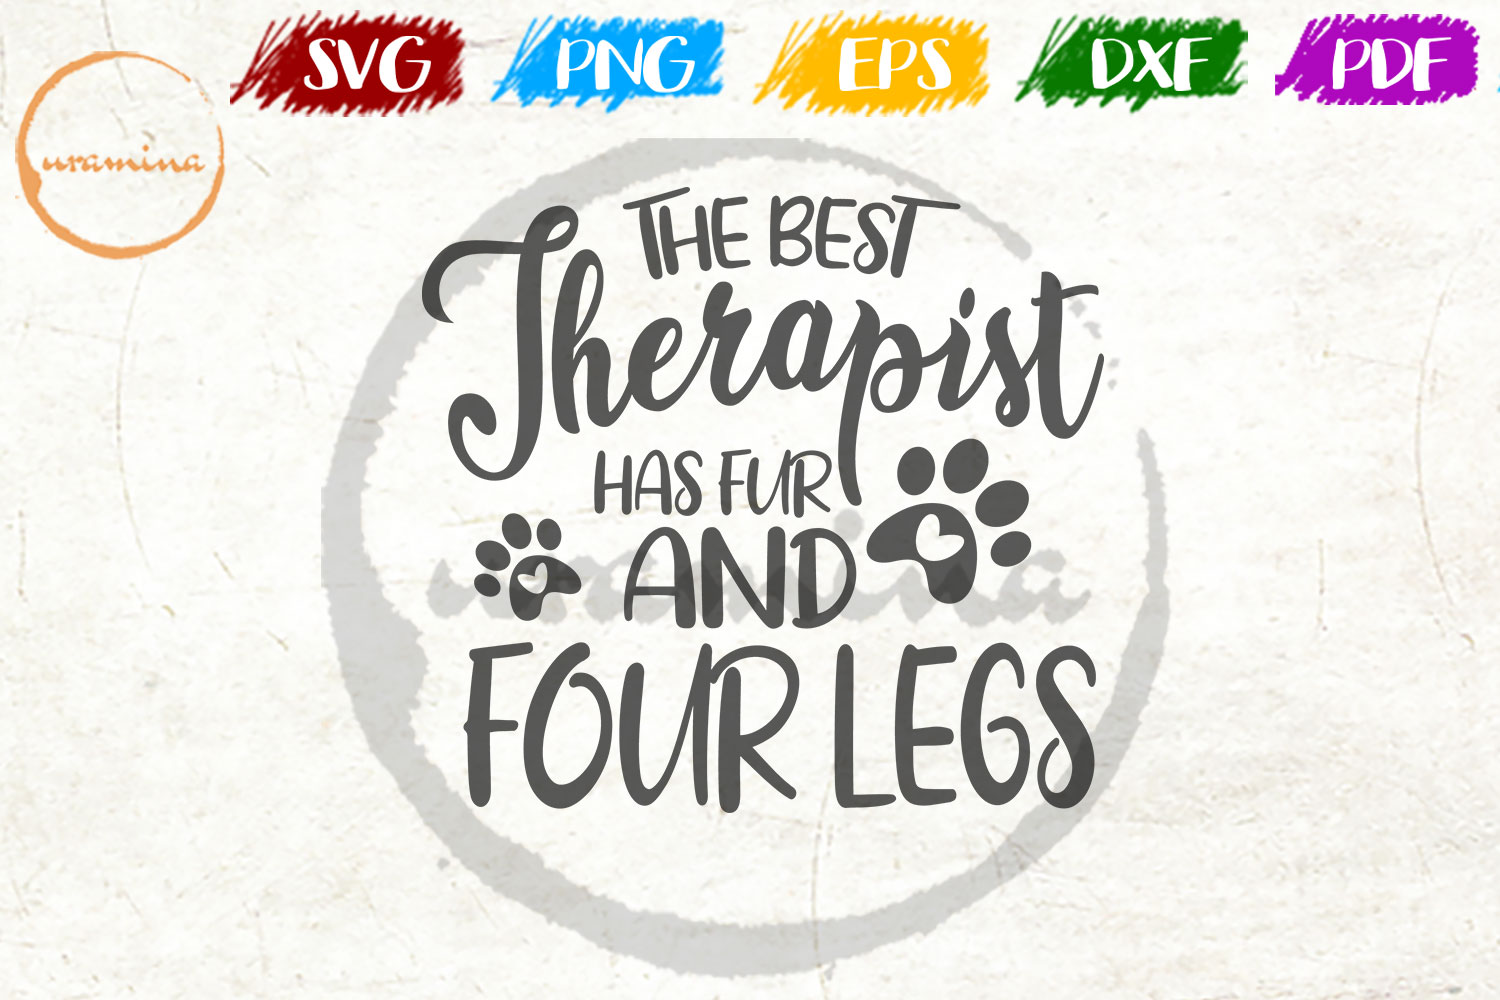 Download Free The Best Therapist Has Fur And Four Legs Graphic By Uramina for Cricut Explore, Silhouette and other cutting machines.